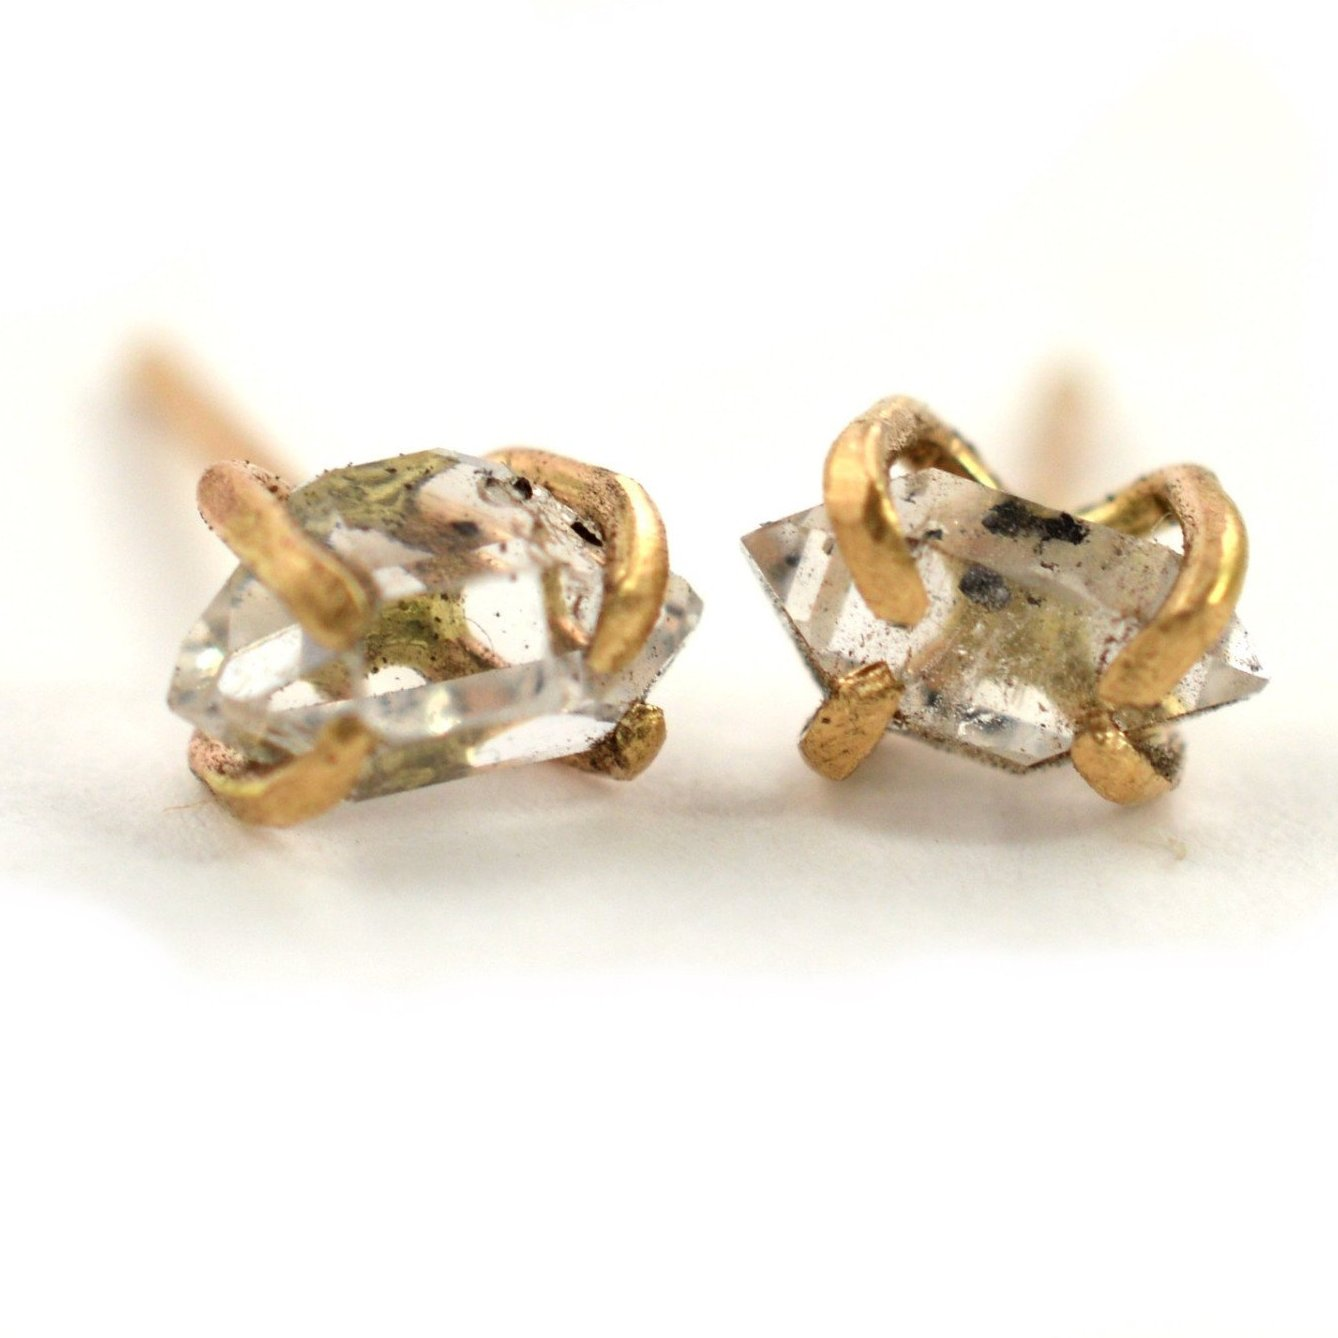 Raw stone earrings, herkimer diamond stud earrings, aquarian thoughts jewelry